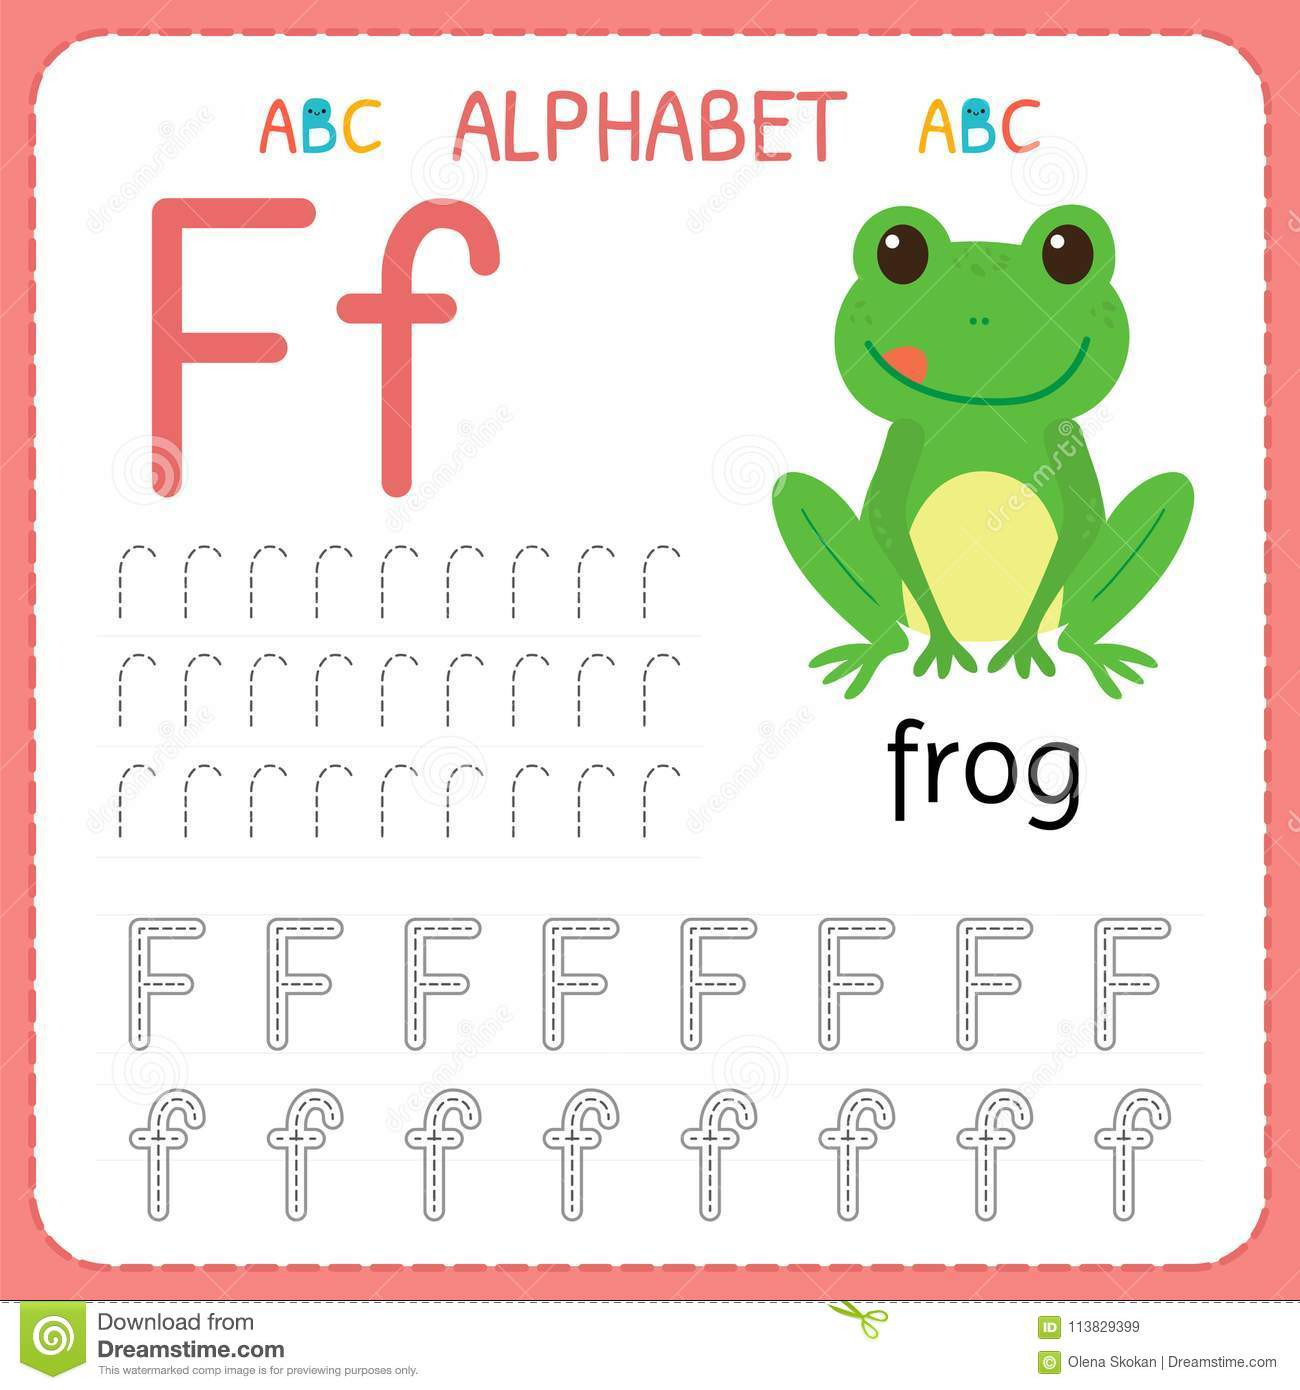 F Worksheets for Preschool Alphabet Tracing Worksheet for Preschool and Kindergarten